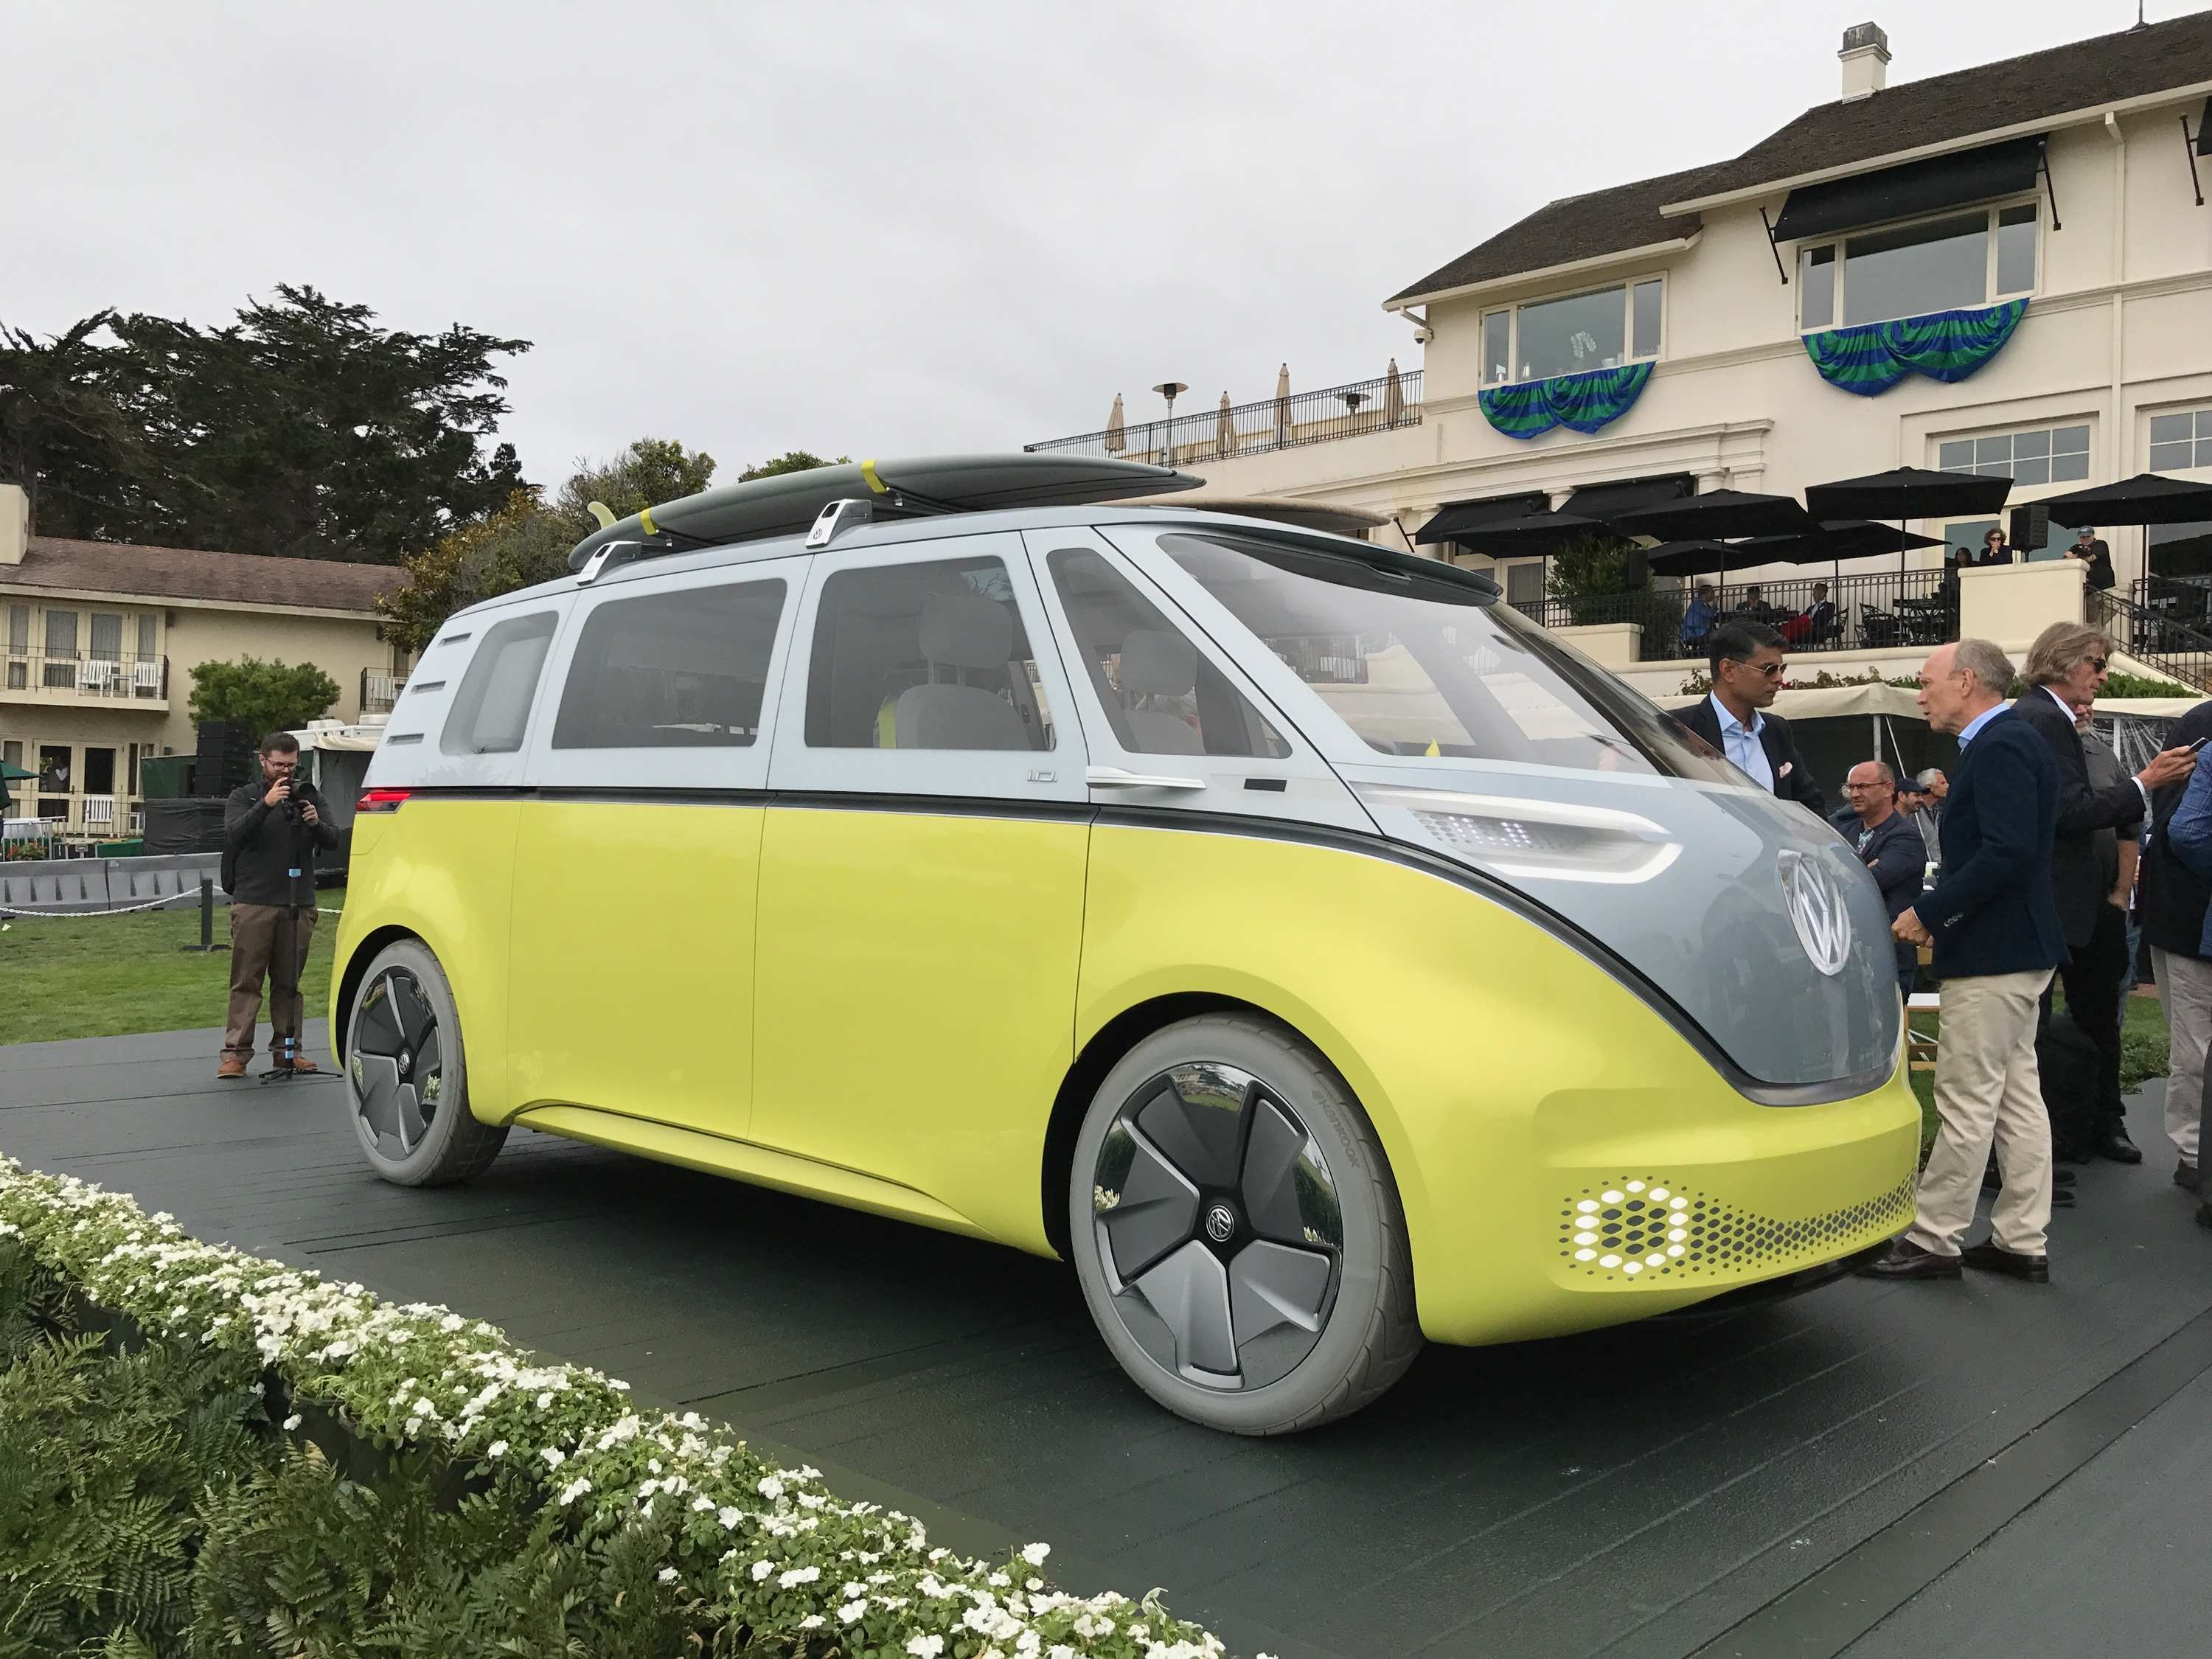 65 Gallery of 2019 Volkswagen Van Performance with 2019 Volkswagen Van